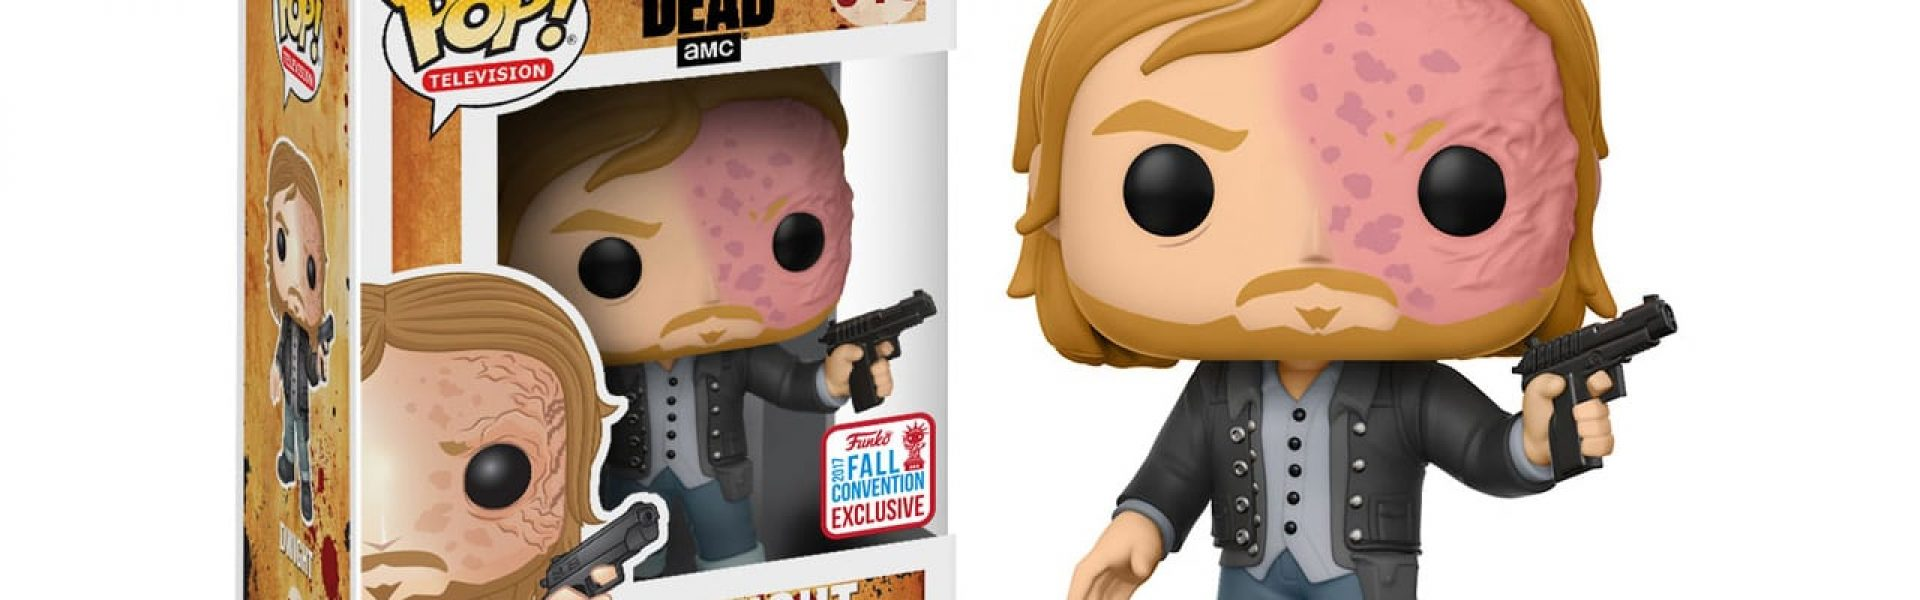 TWD-Dwight-burnt-face-nycc-2017-exclusive-restock